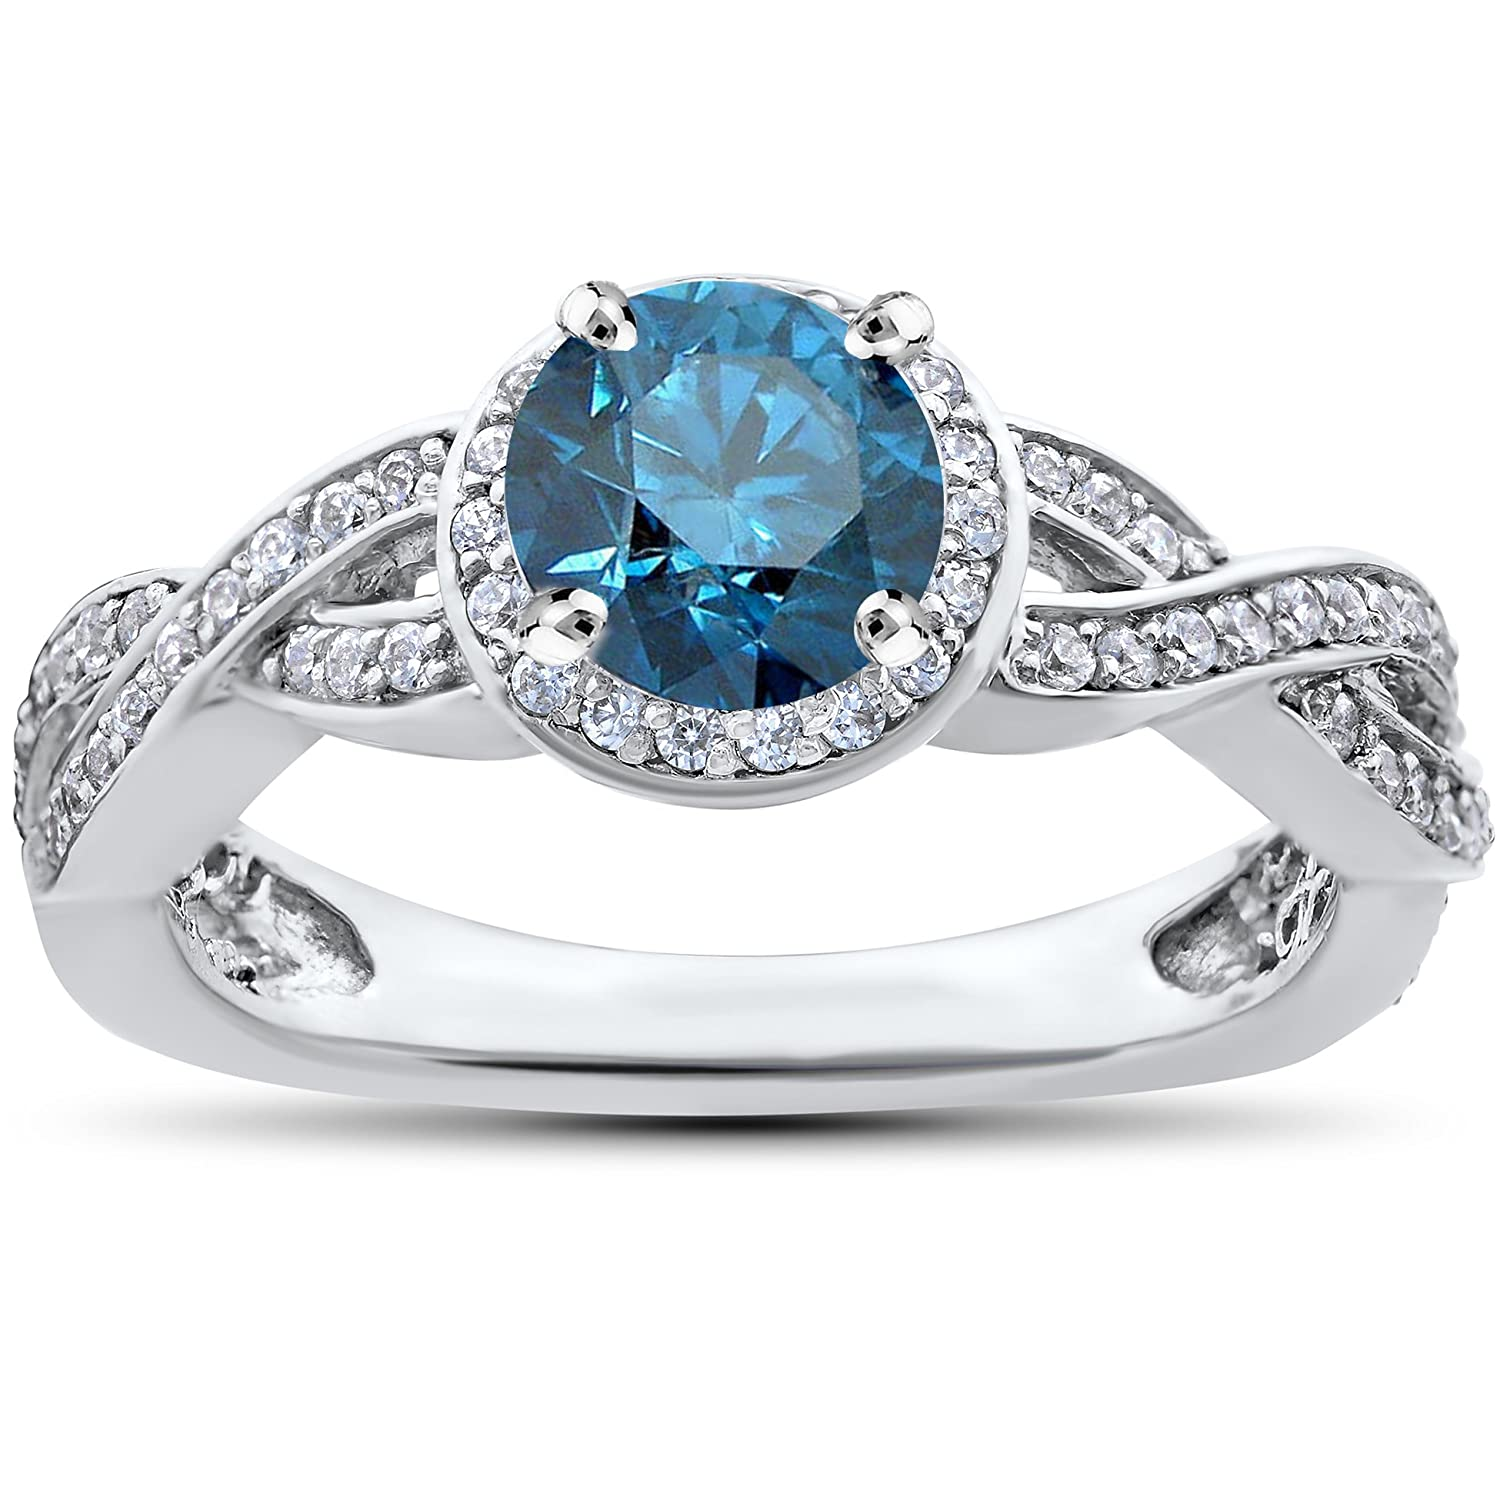 engagement ring diamond what extremely felt it like on an rings is vivid a carat between img dark i tried this blue rare and valued million